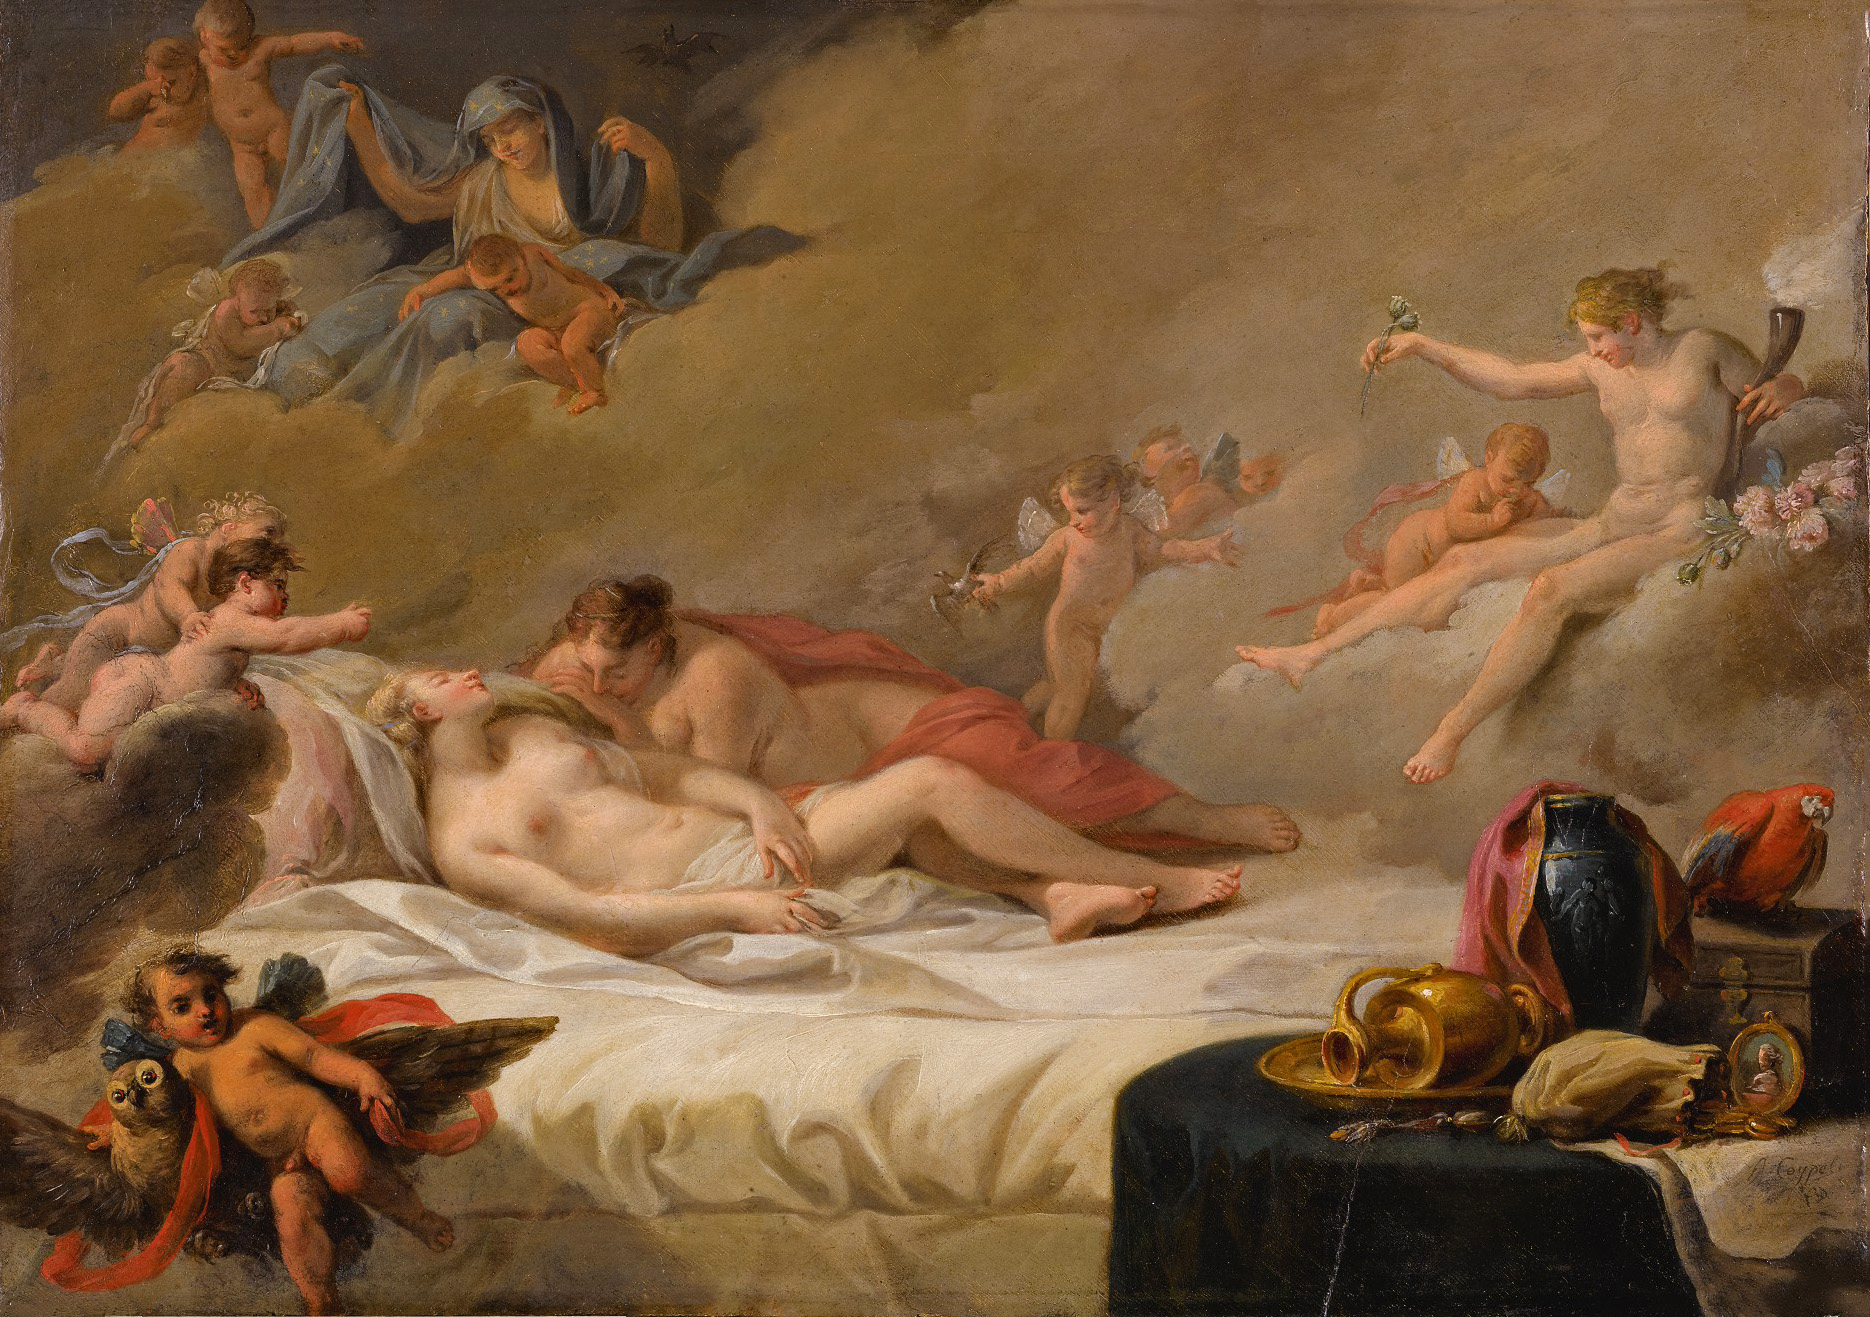 French School - An Allegory of Sleep (mid 18th century)